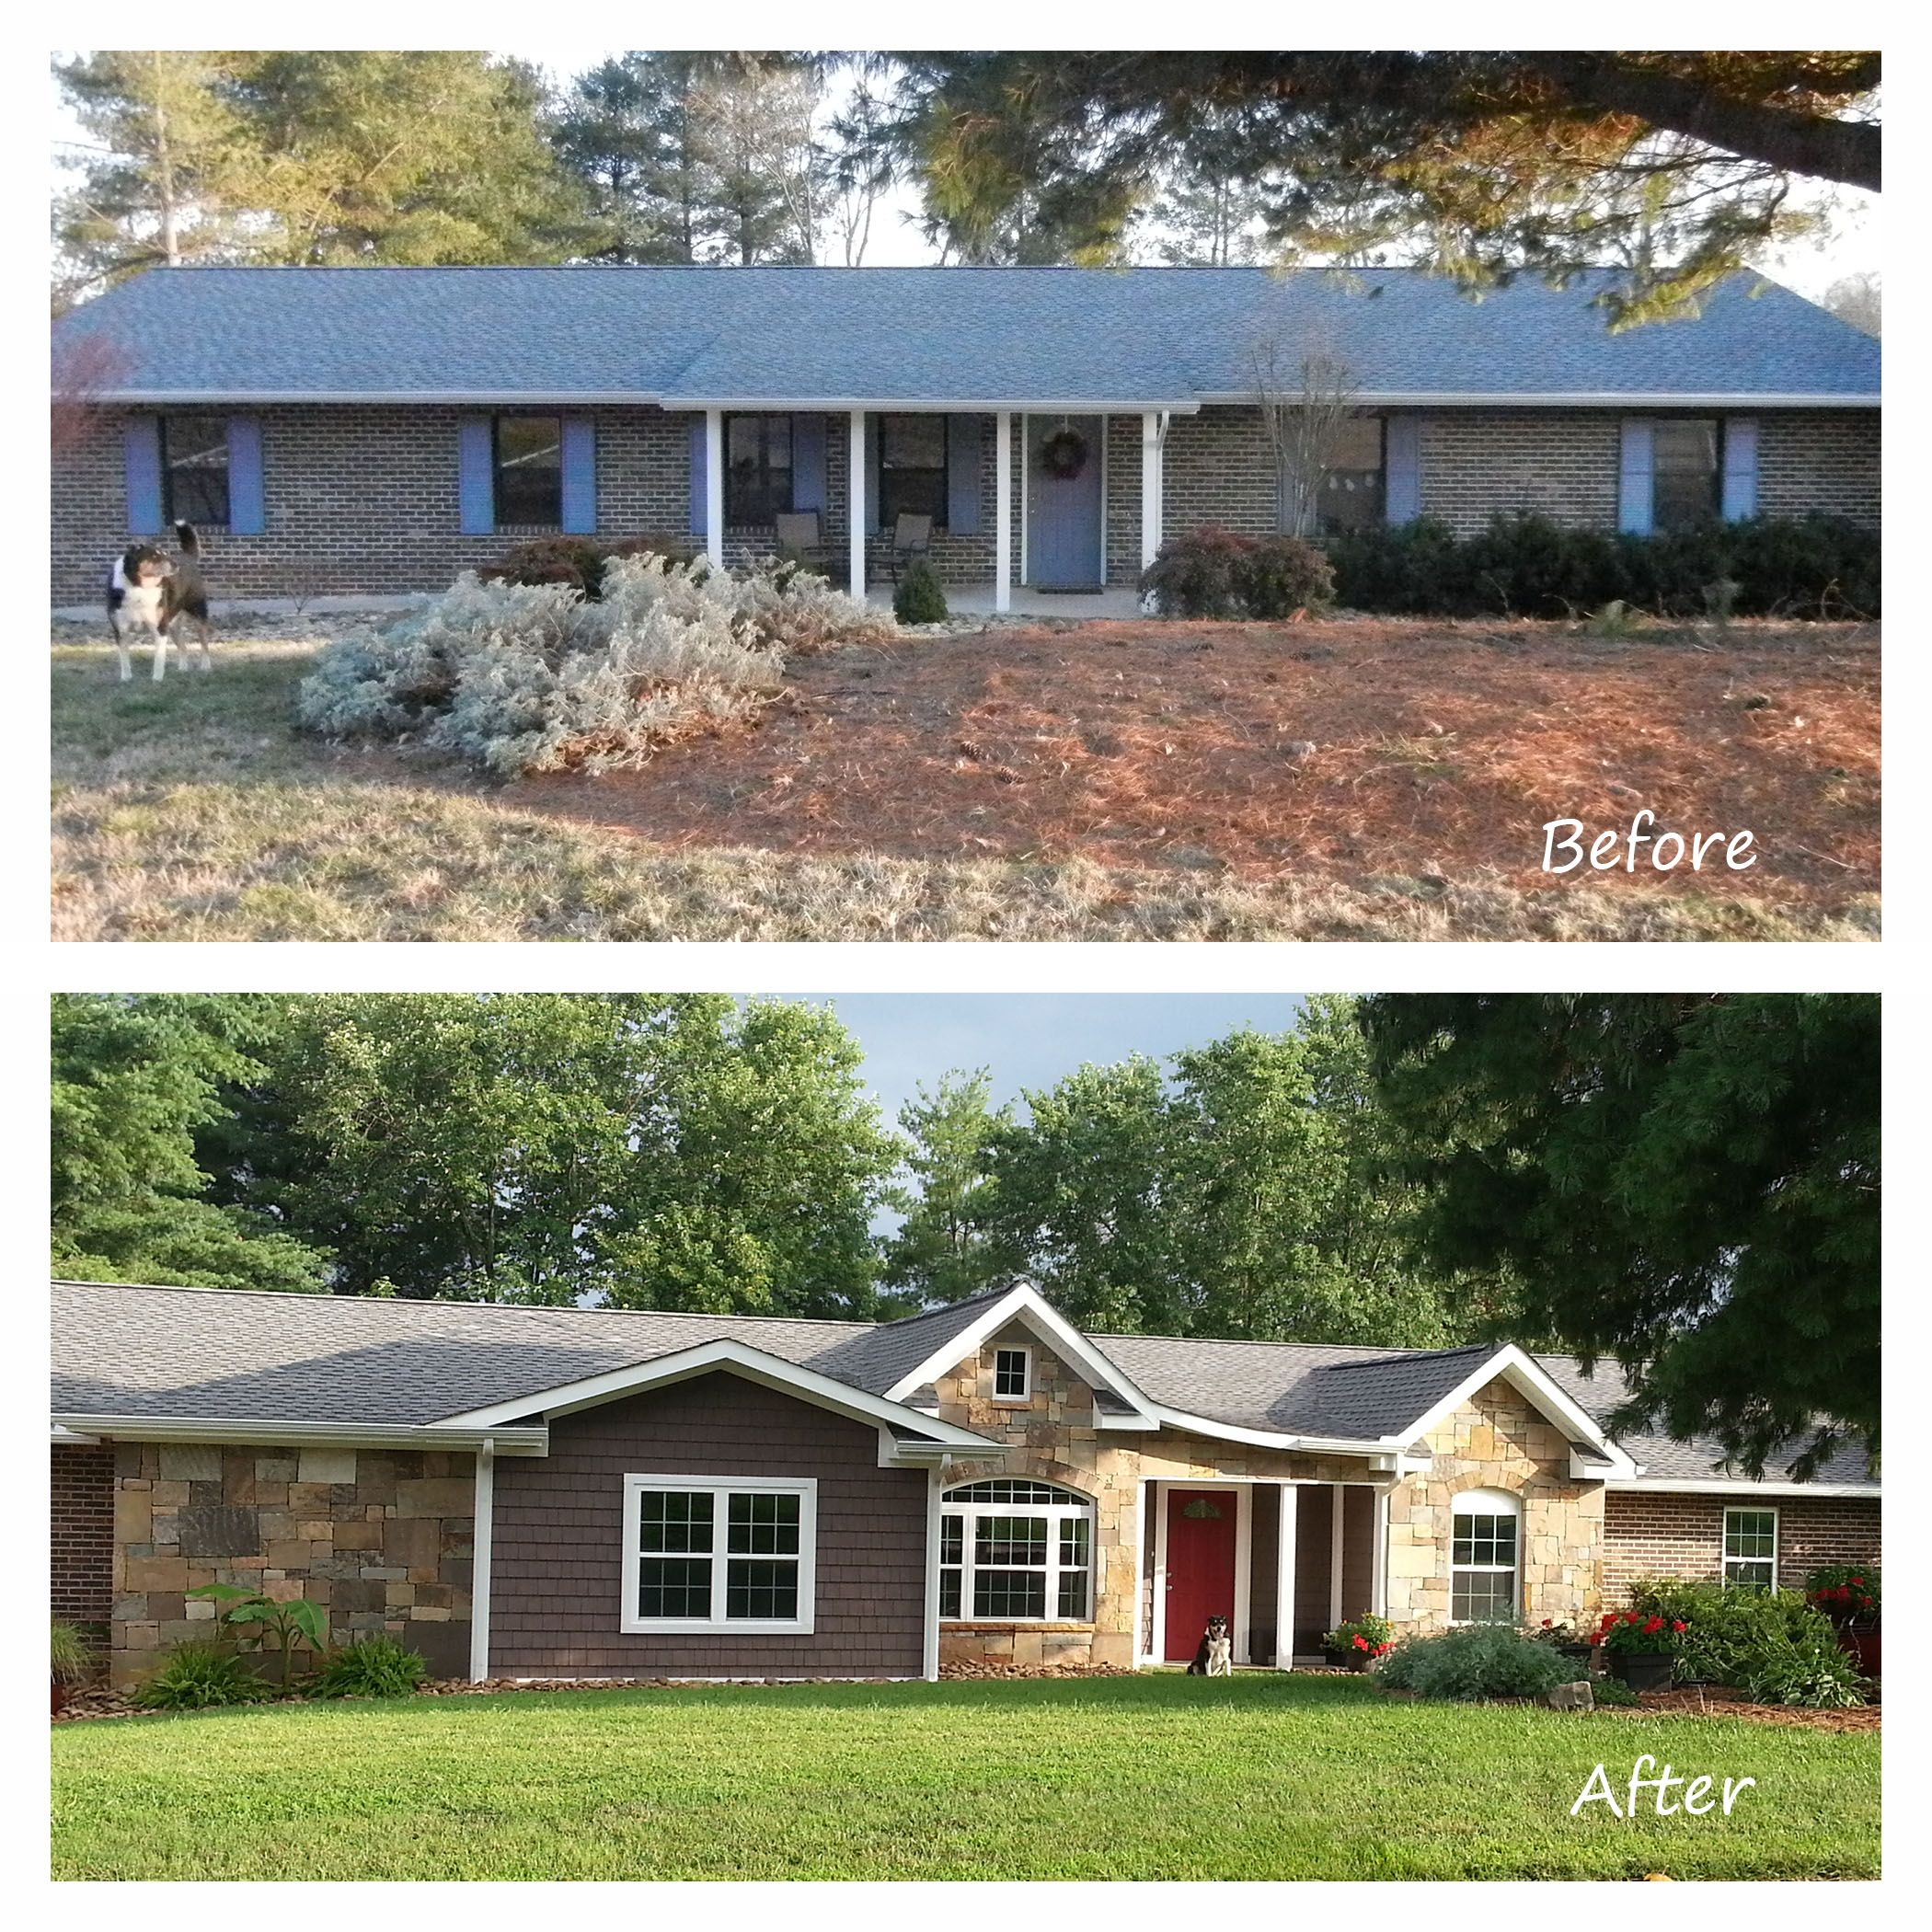 Before and after exterior renovation ranch house remodel for Ranch house remodel plans